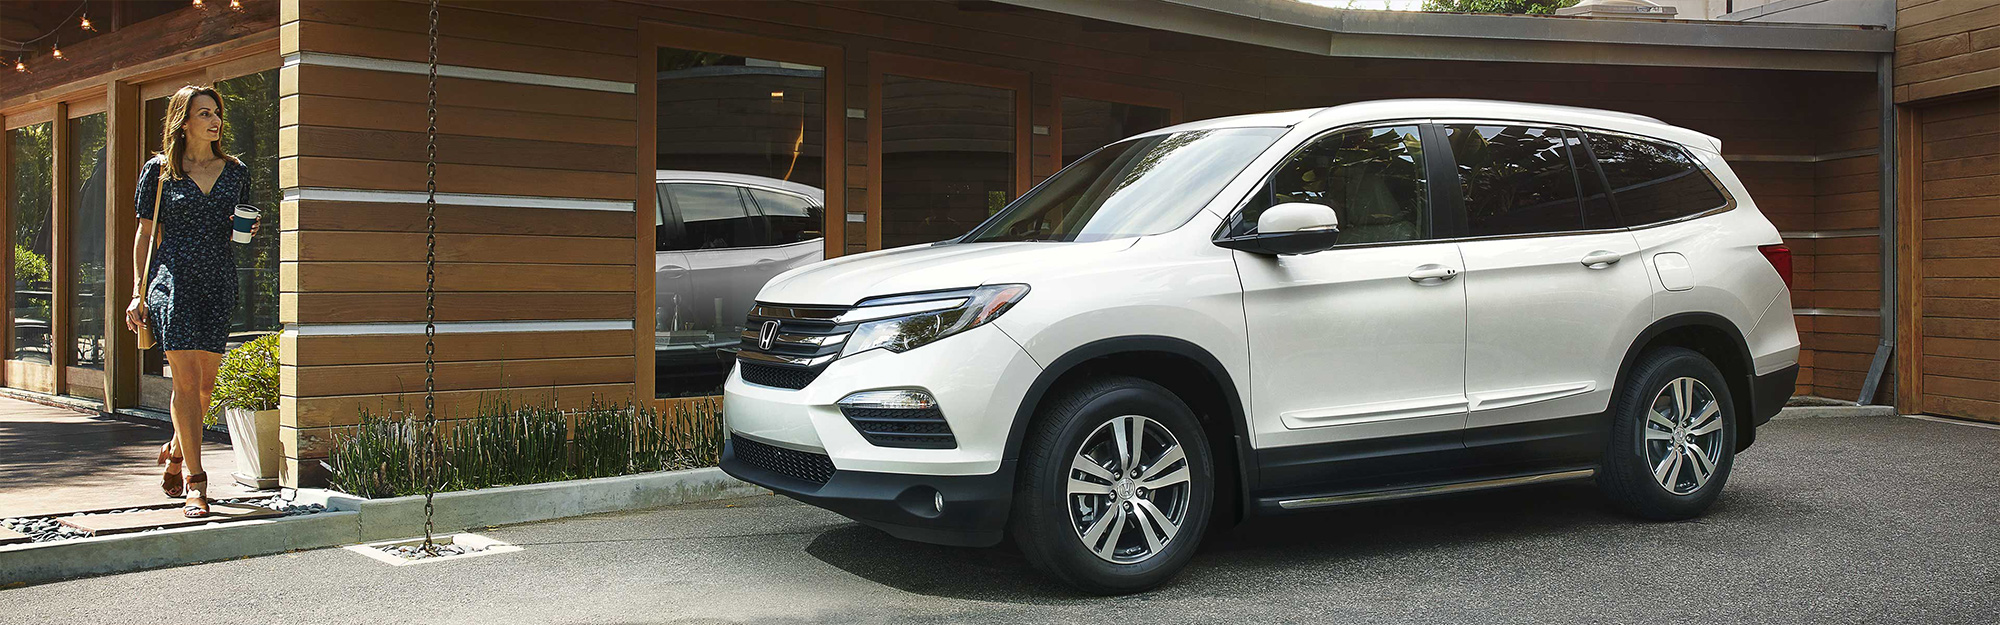 A white 2019 Honda Pilot, parked in front of a trendy home, while its driver walks over to take a ride